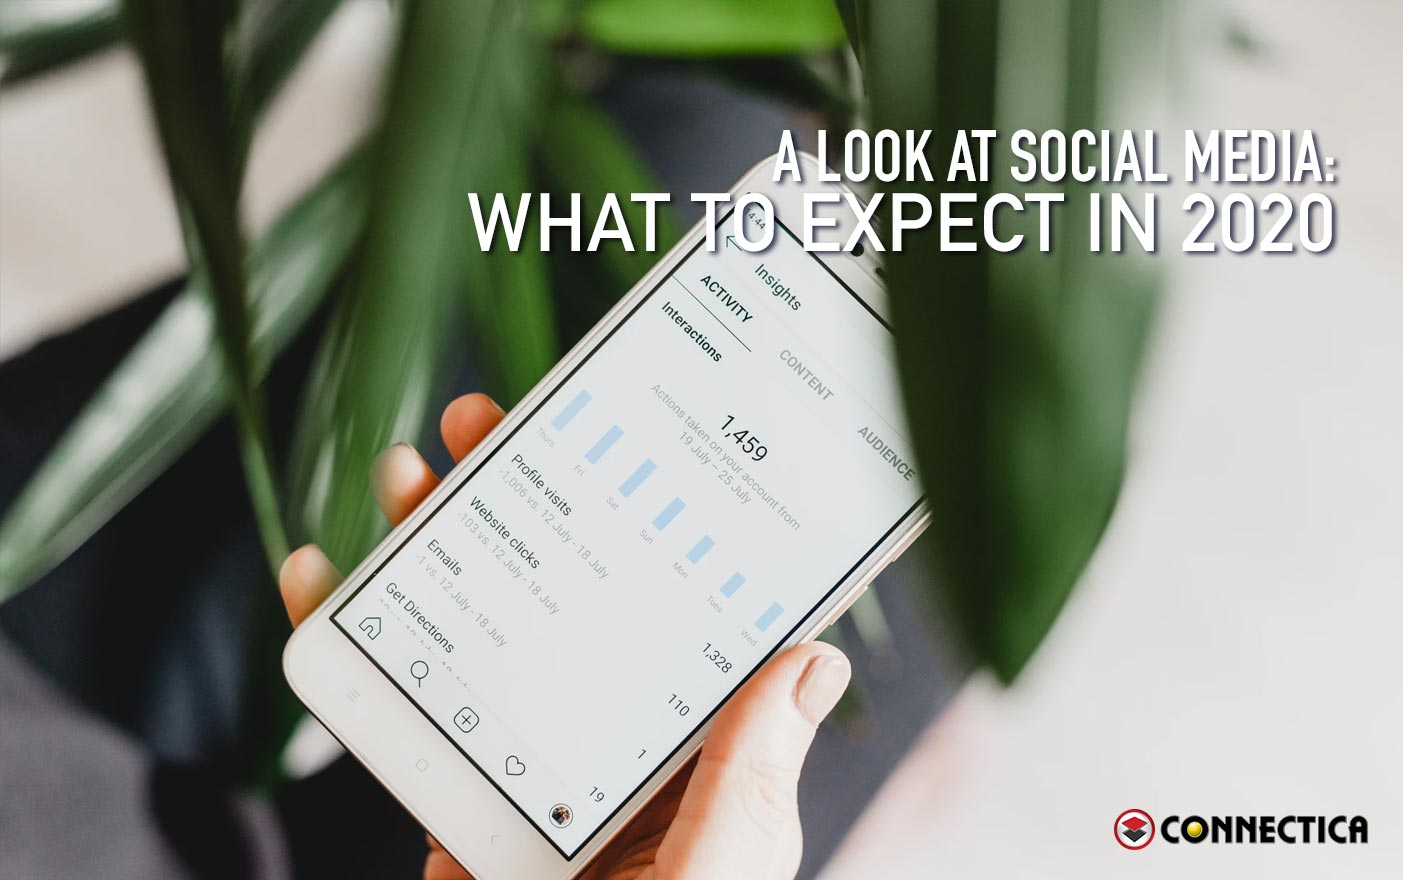 A Look At Social Media: What To Expect In 2020